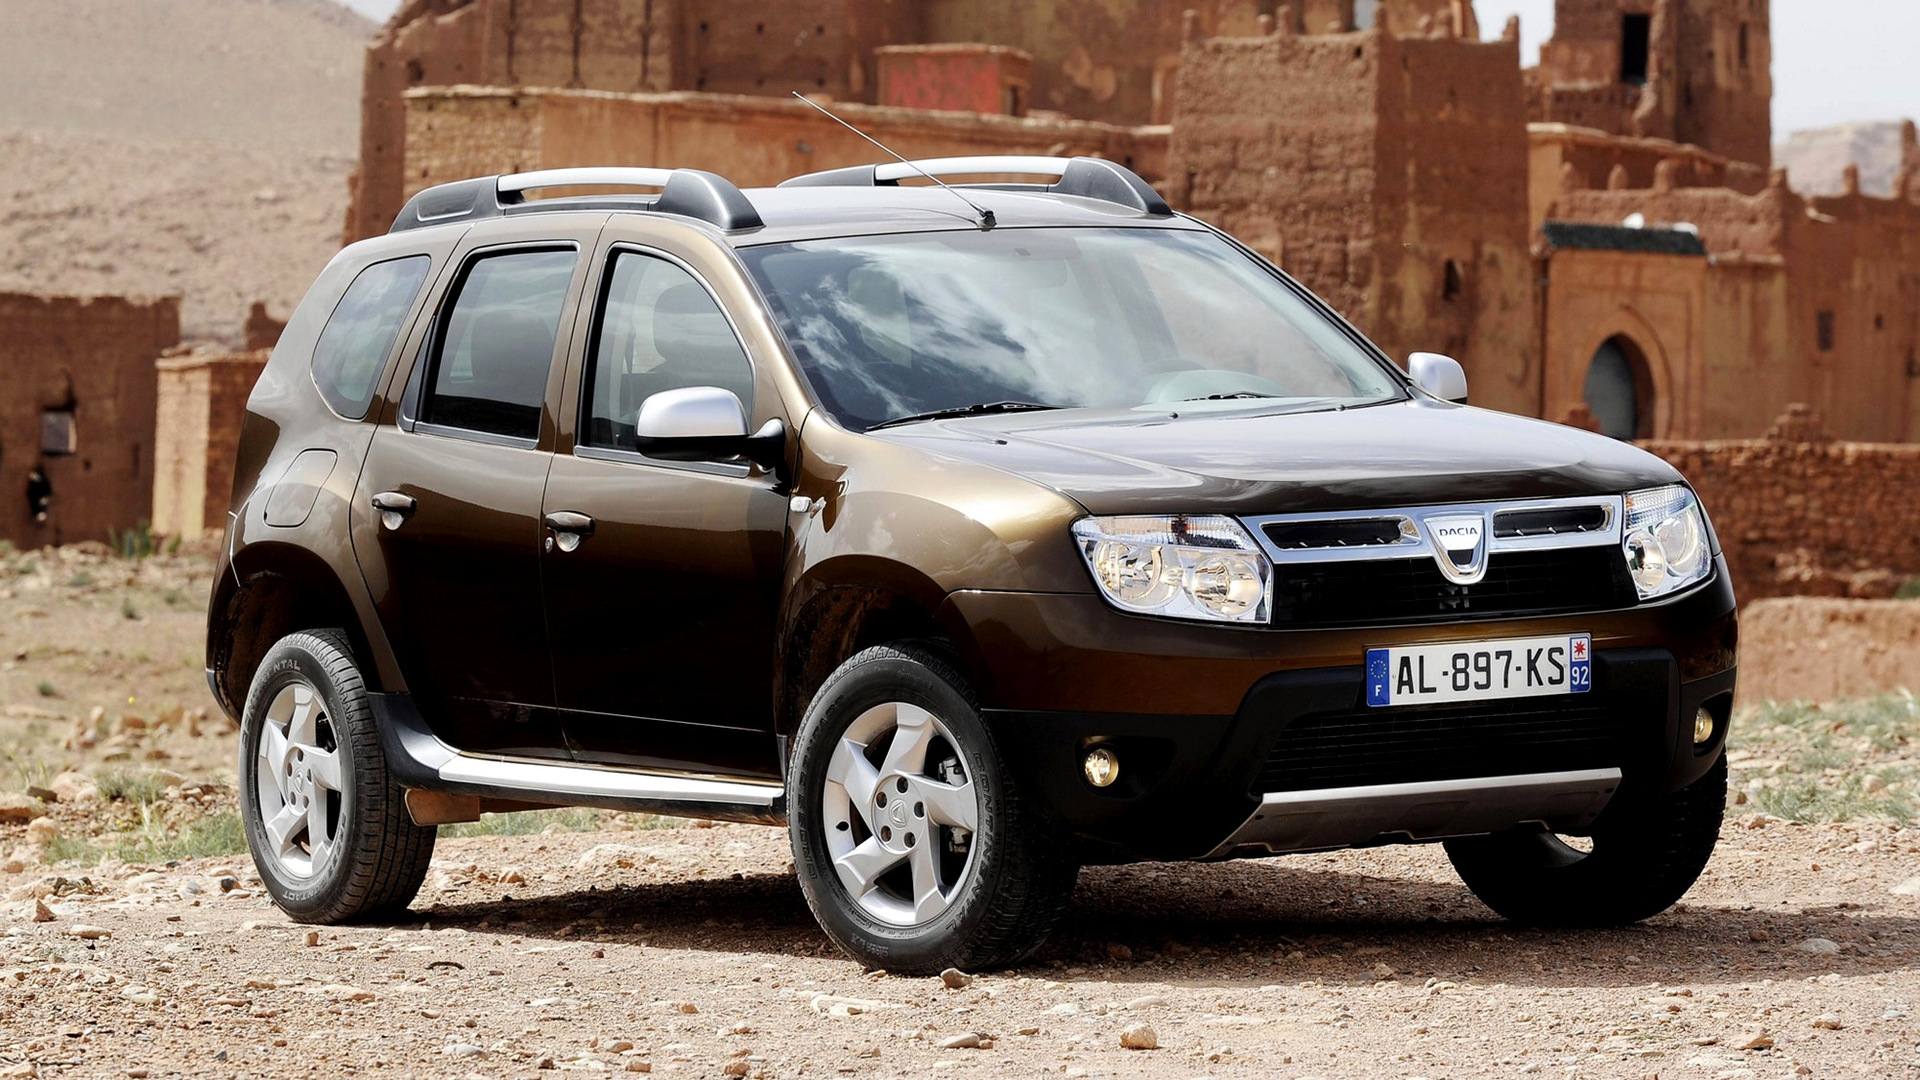 Dacia duster 2010 wallpapers and hd images car pixel hd 169 voltagebd Image collections